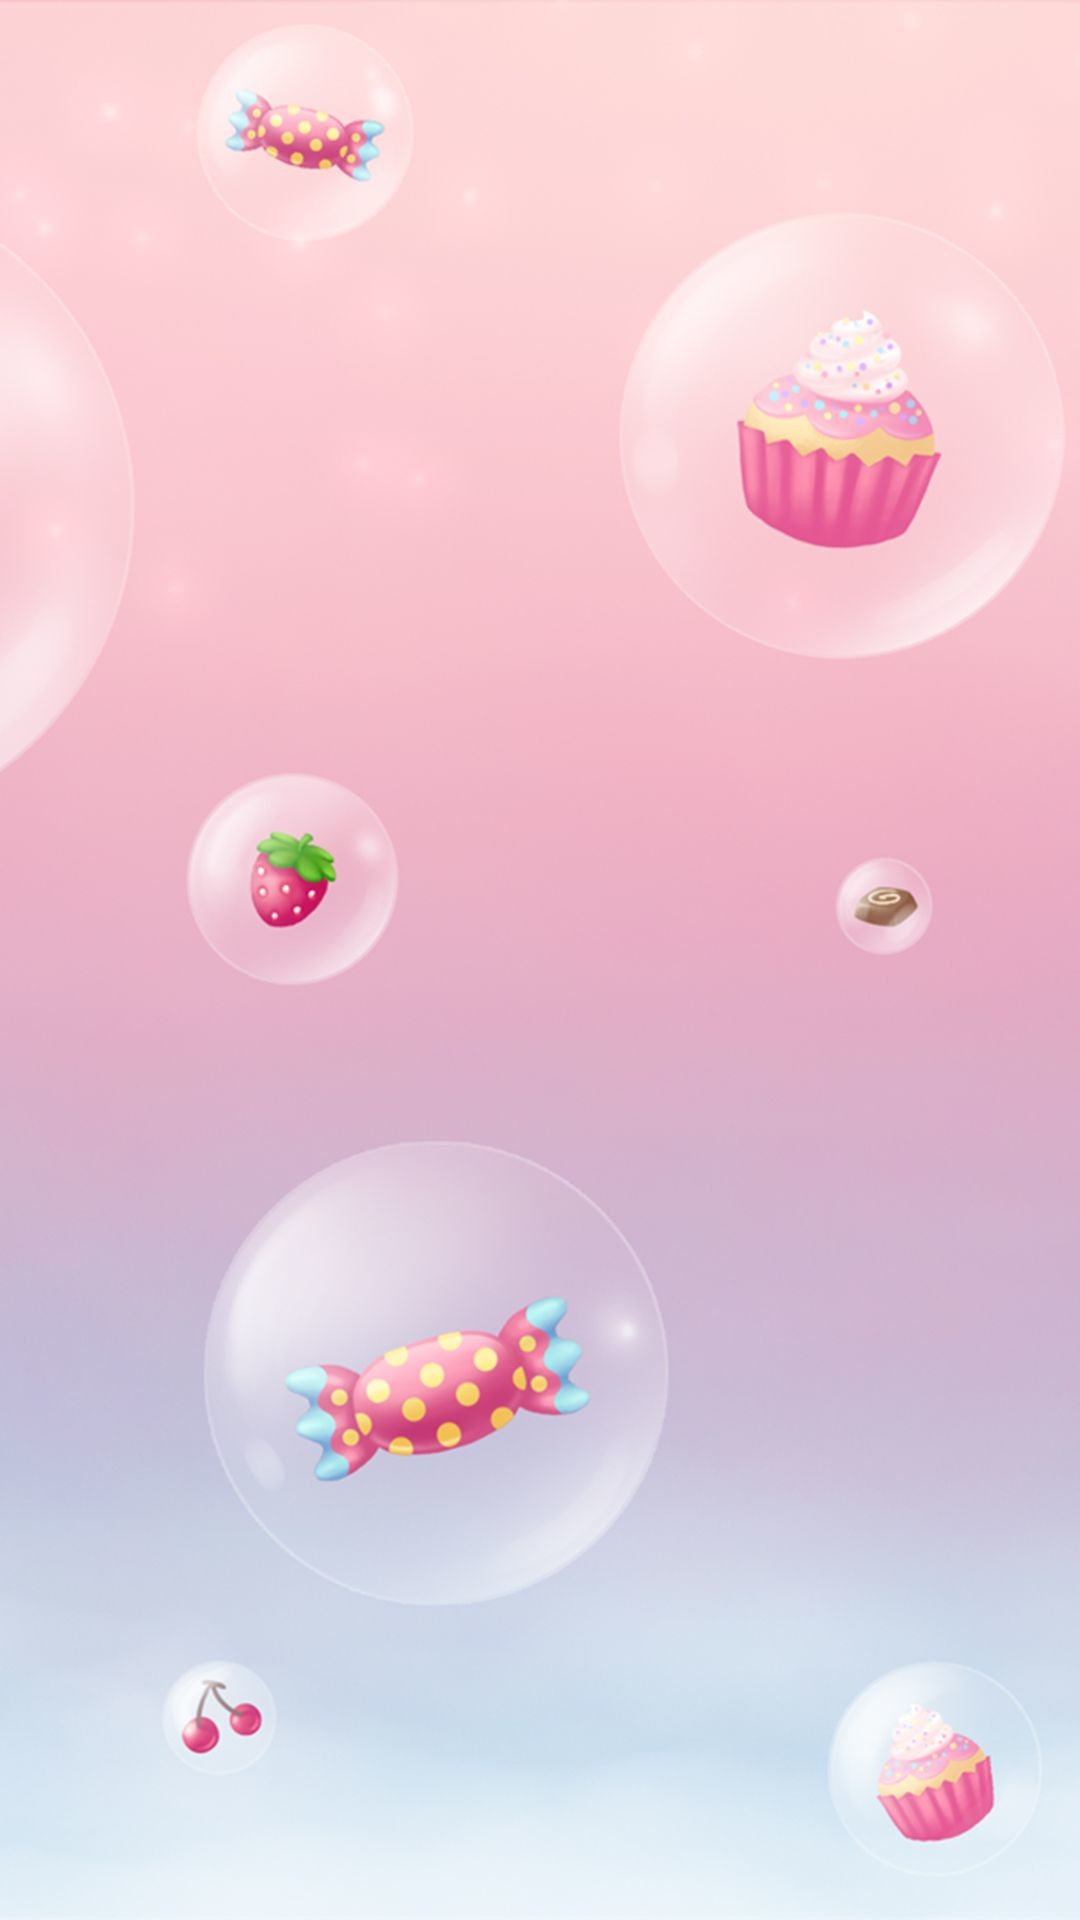 Res: 1080x1920, Girly cute iPhone6s wallpaper : cupcakes